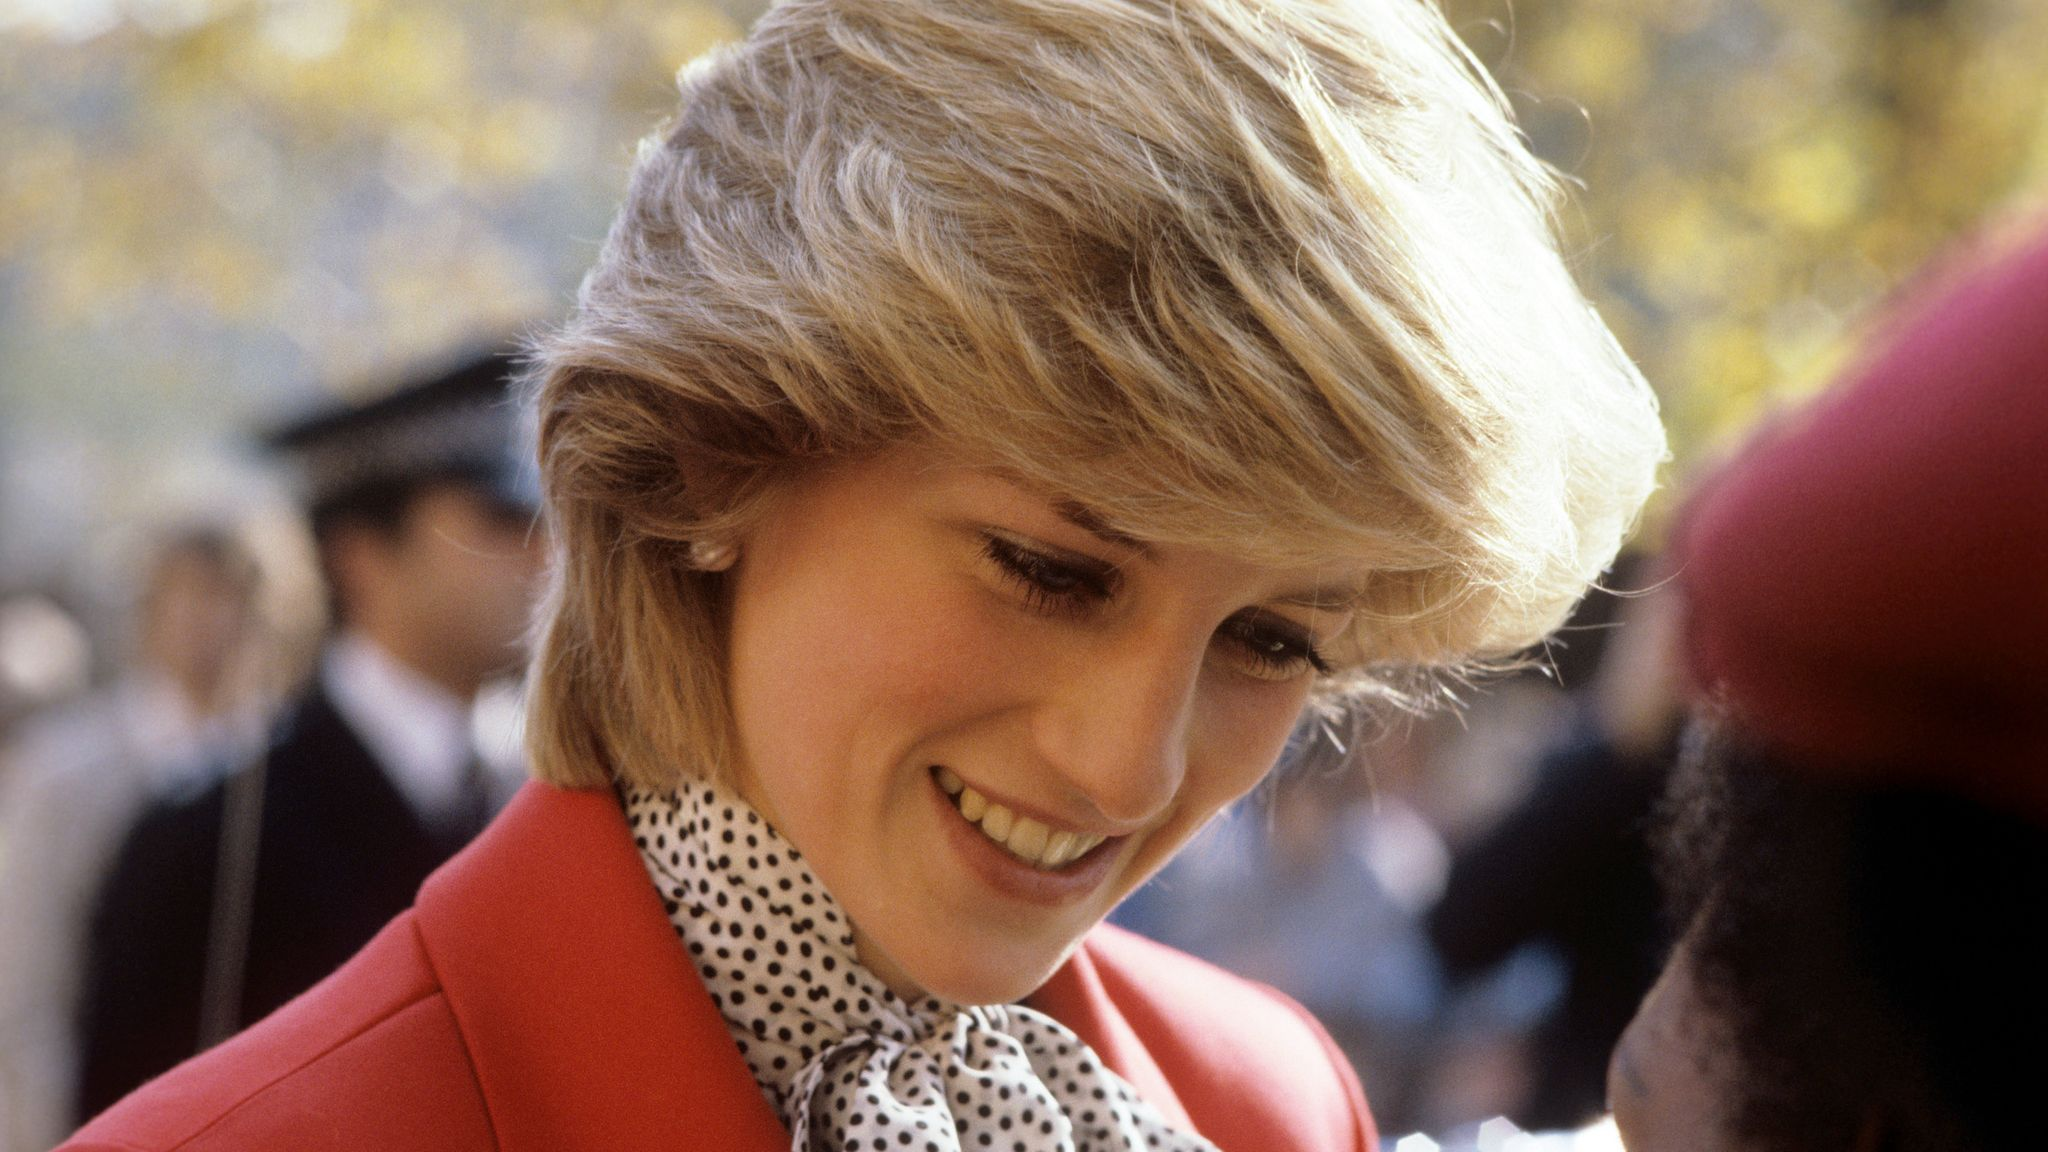 The Princess of Wales arriving at the West Indian Family Centre, in Brixton, London in 1983